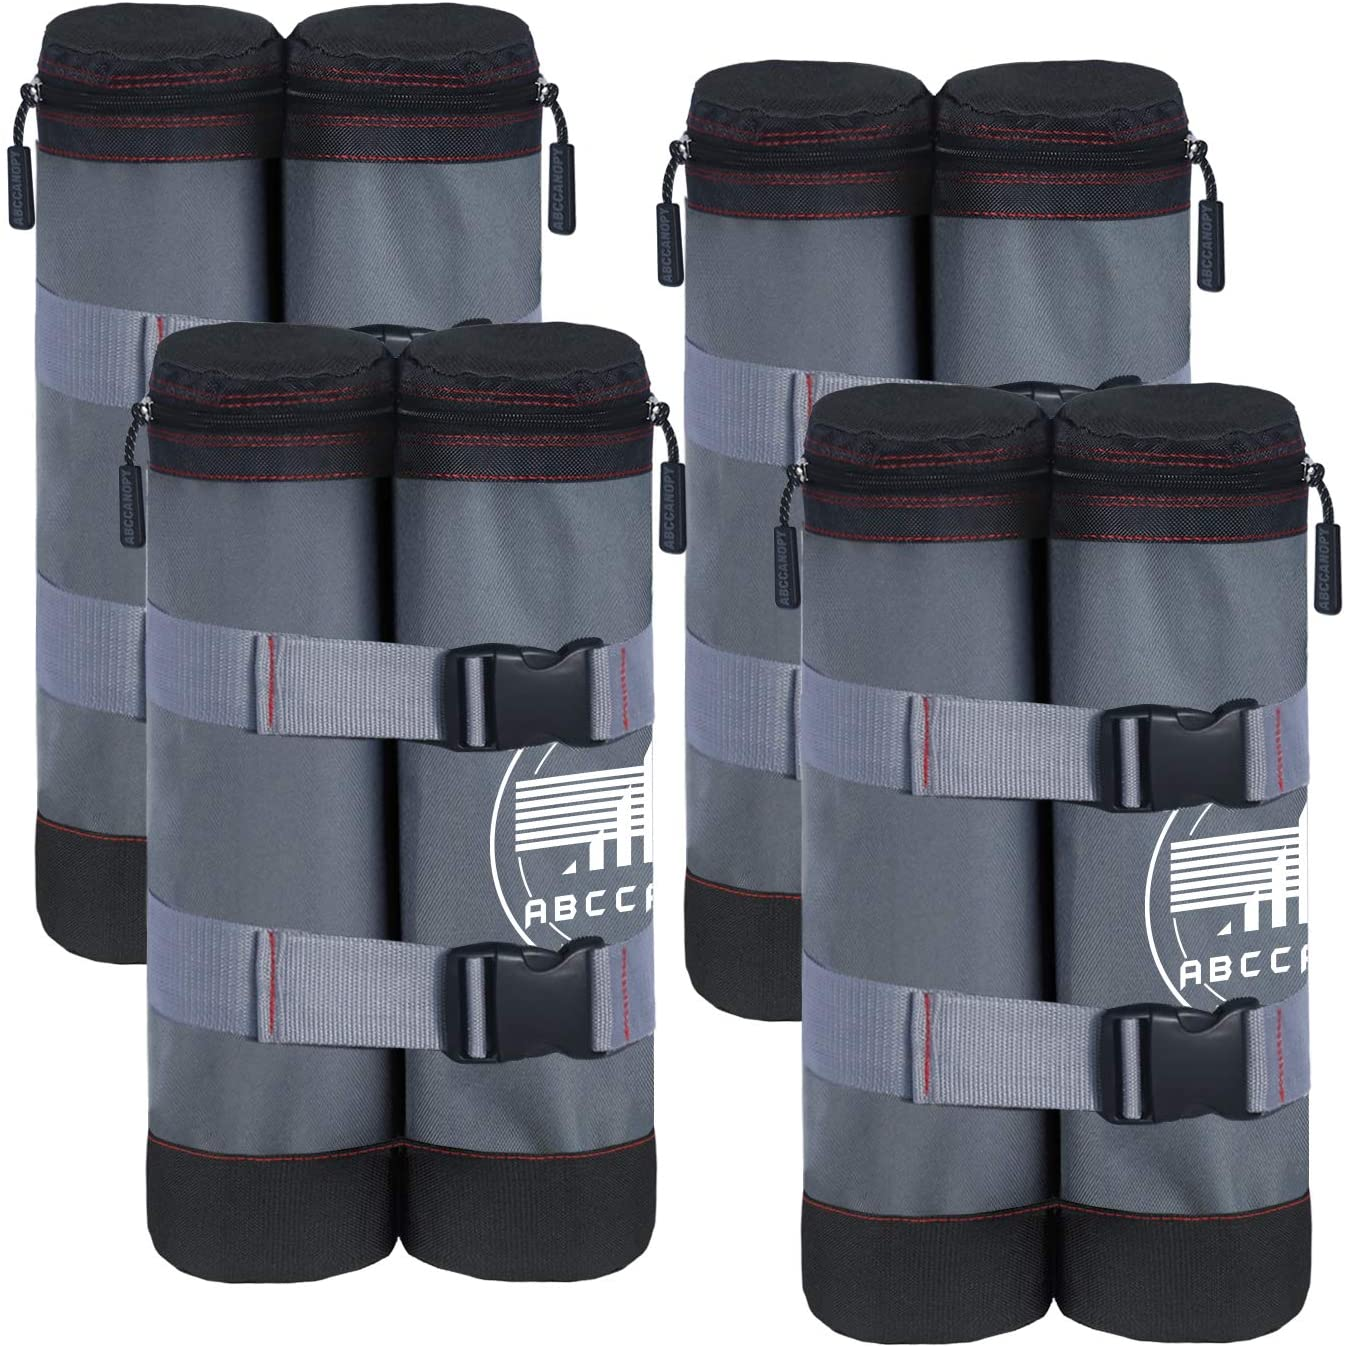 ABCCANOPY Canopy Weight Bags for Colorado Springs Mall Pop Max 87% OFF Instant Canopies up